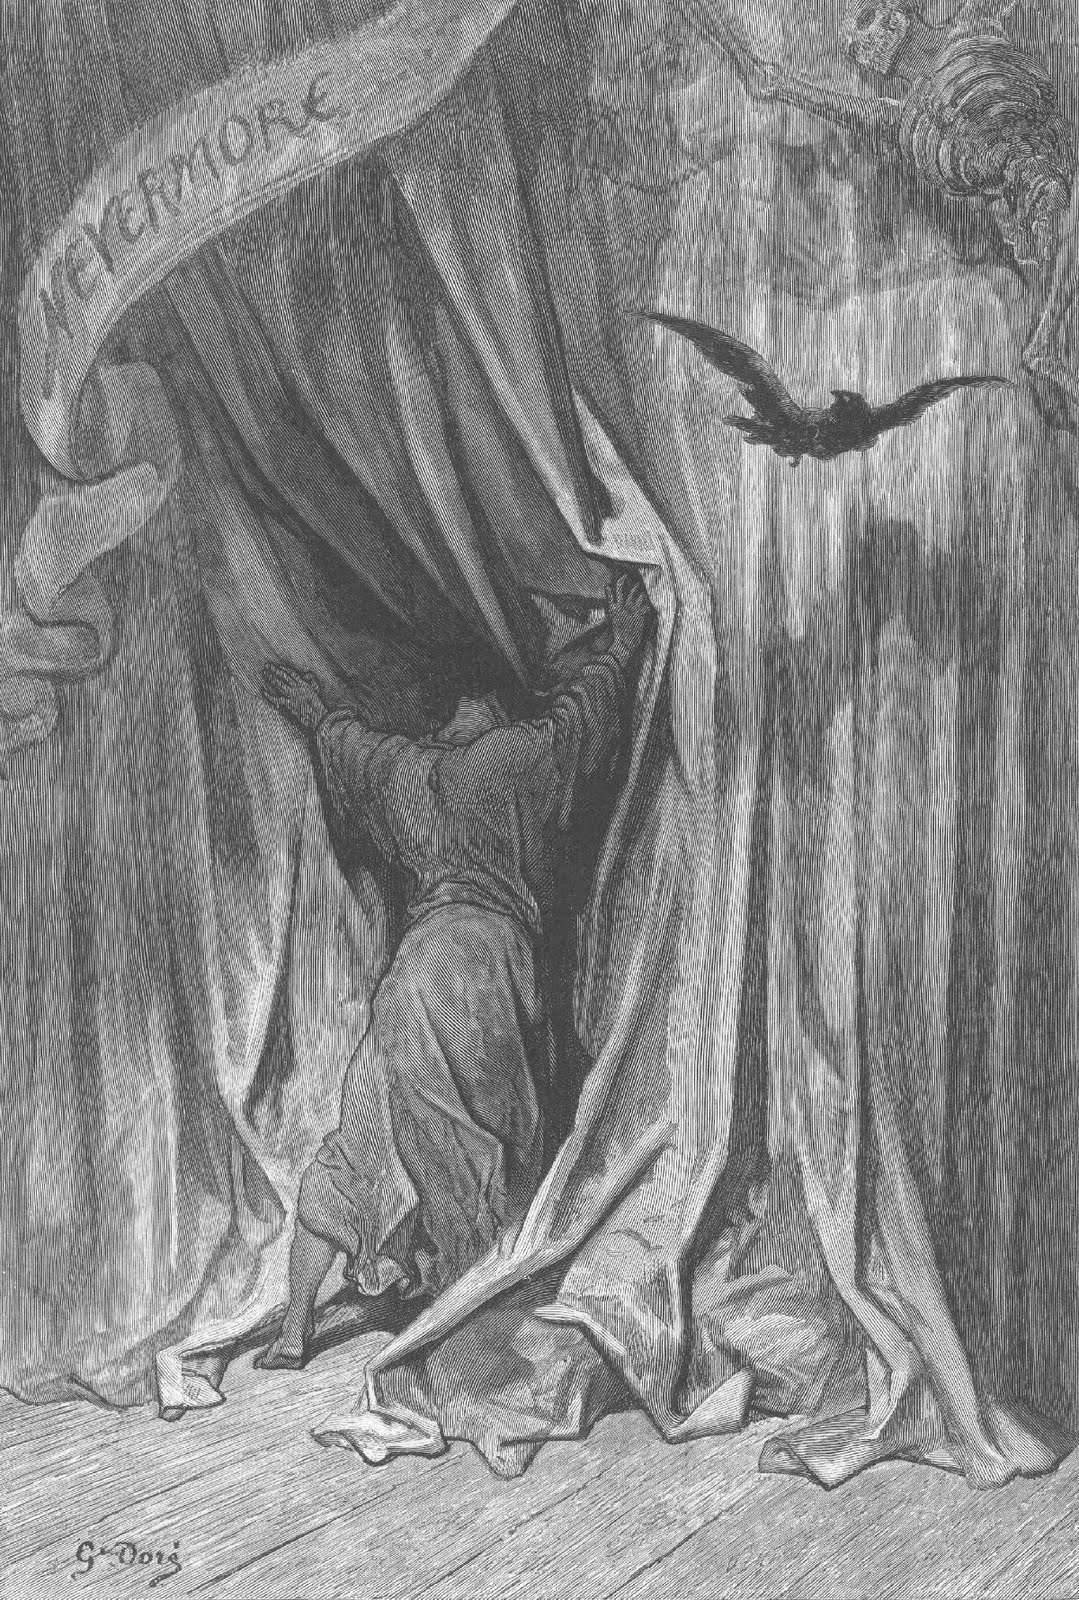 Drawn raven above Poe's he